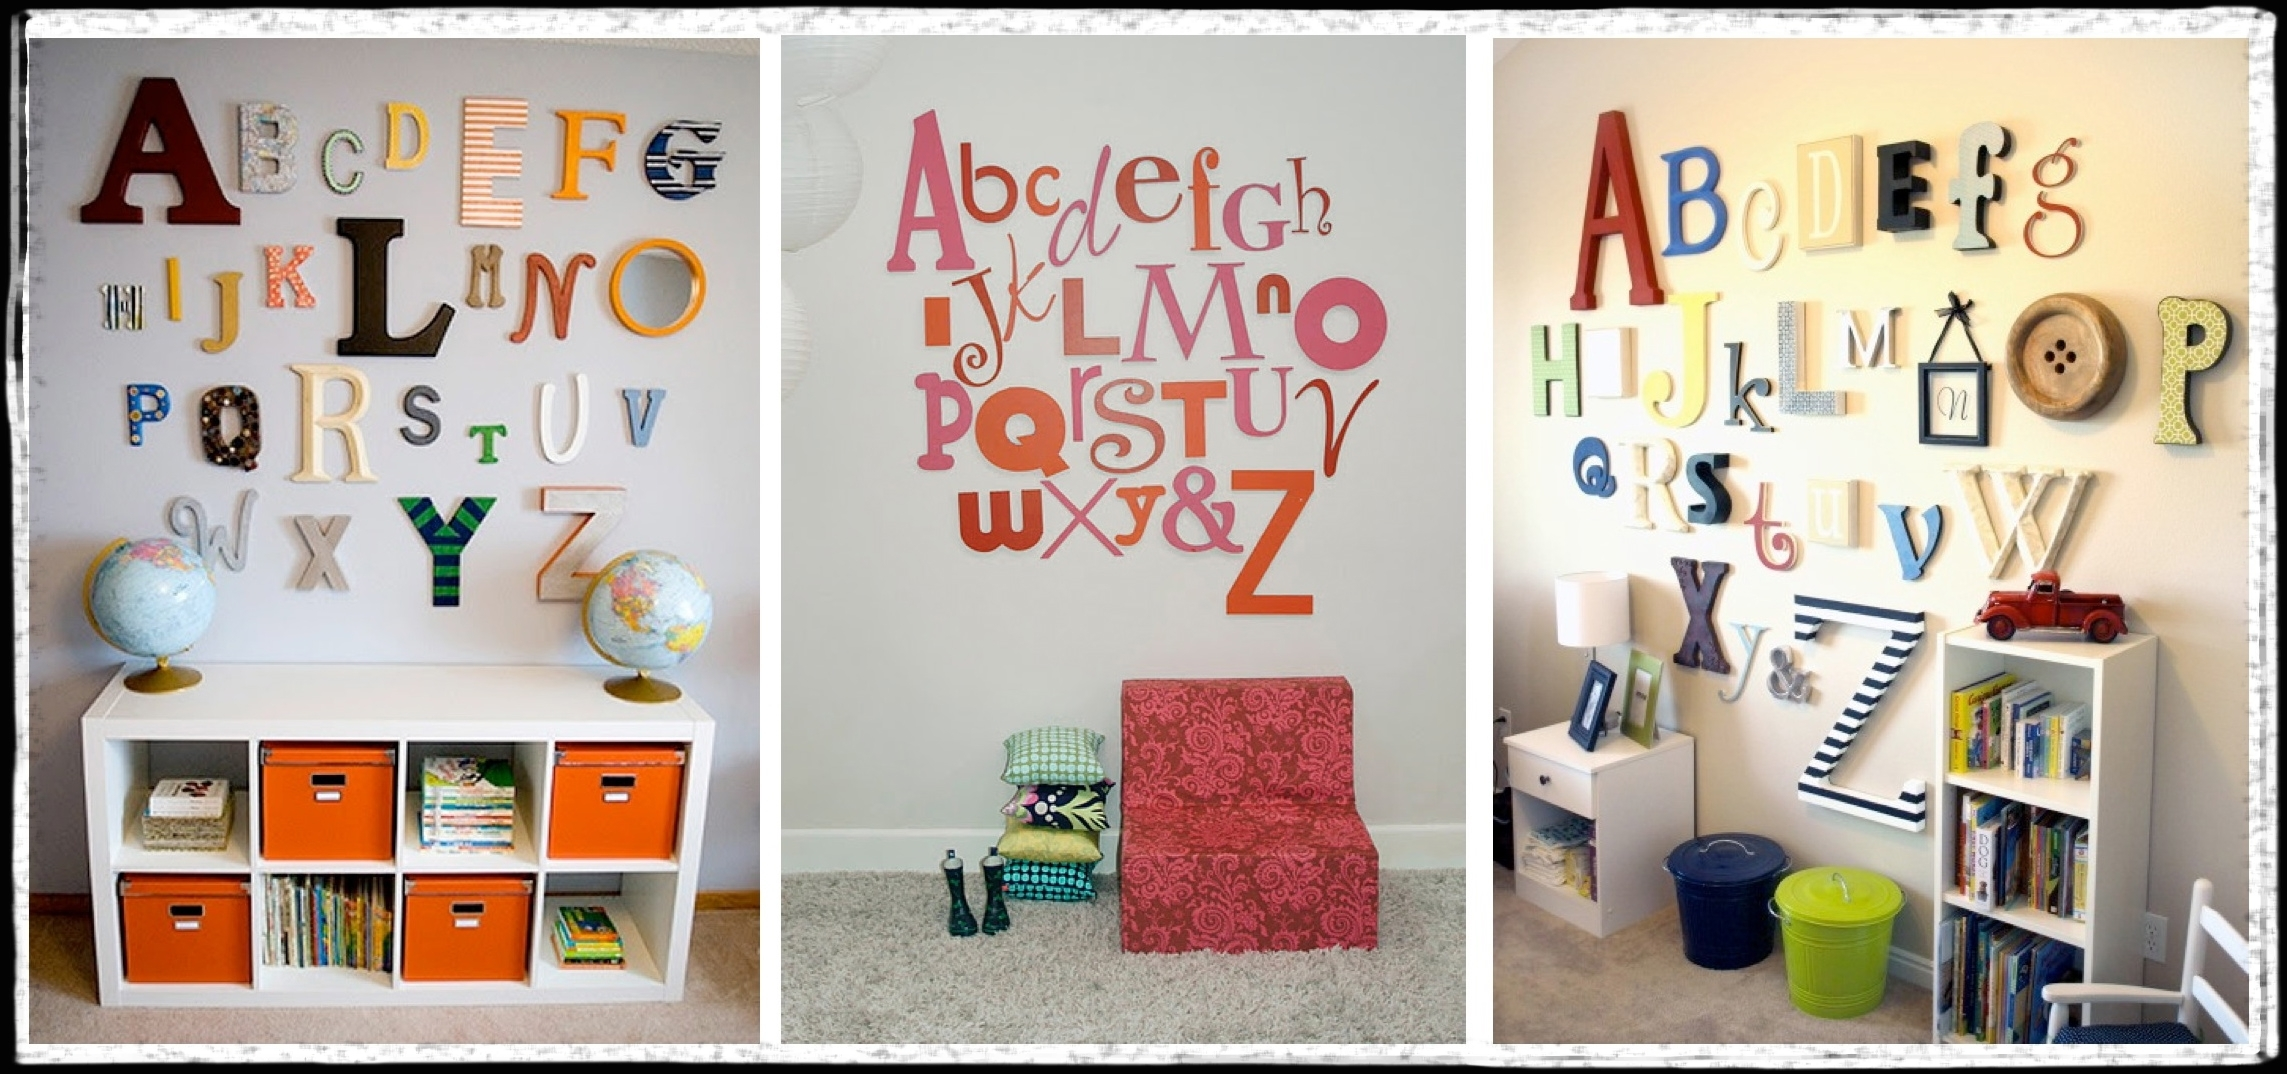 Decorative Letters For Walls | Sevenstonesinc with regard to Most Recent Letter Wall Art